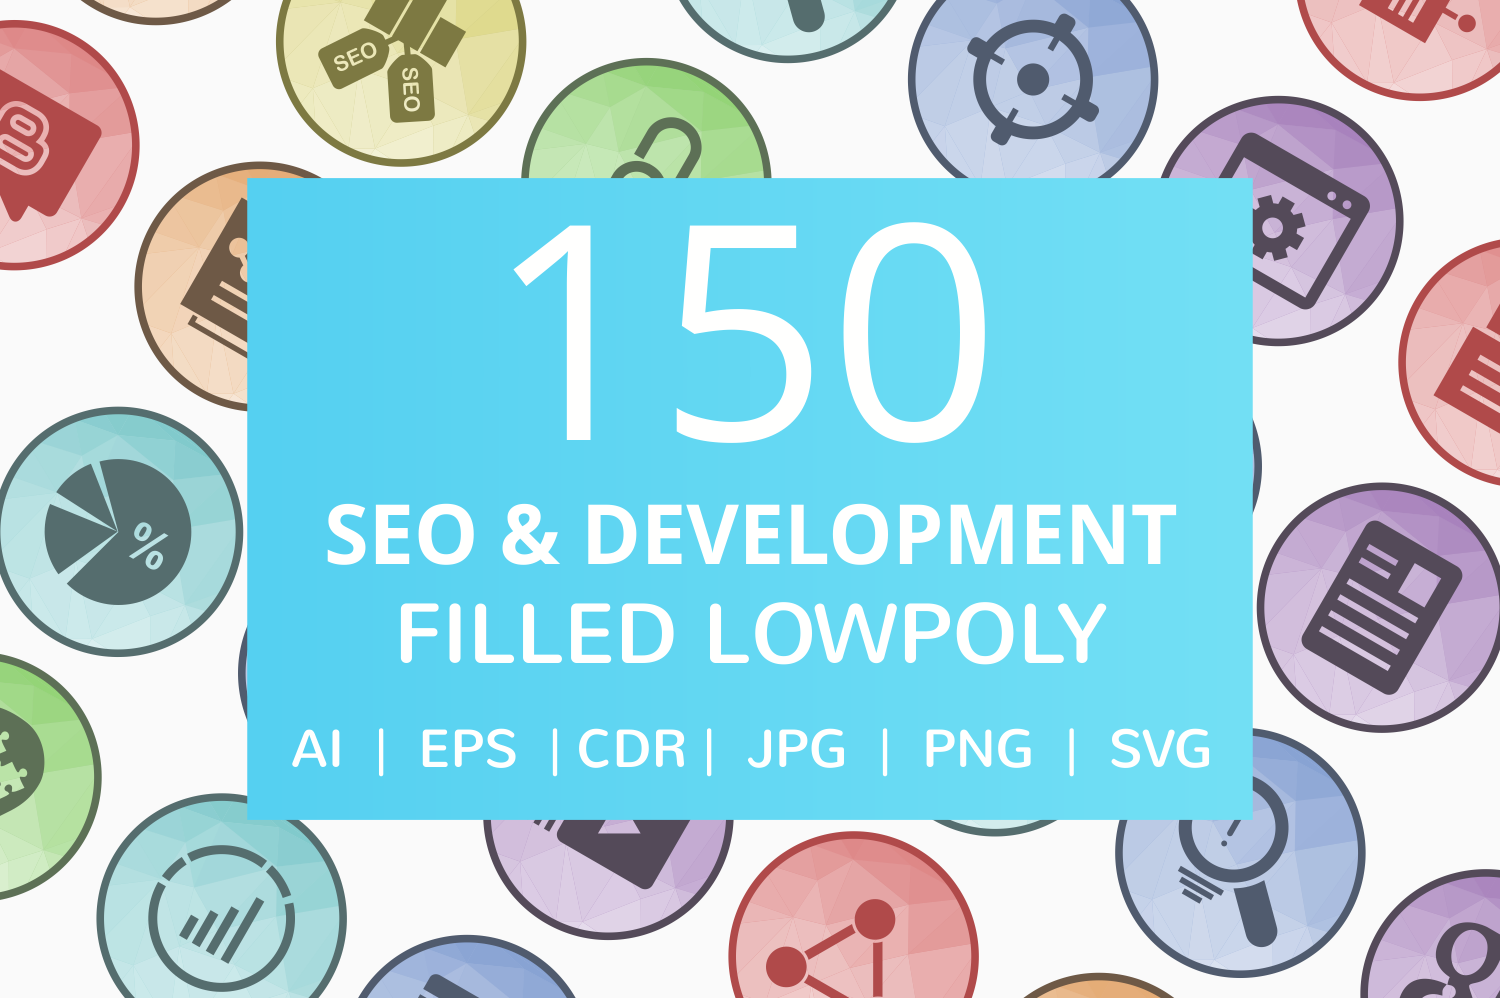 150 SEO & Development Filled Low Poly Icons example image 1